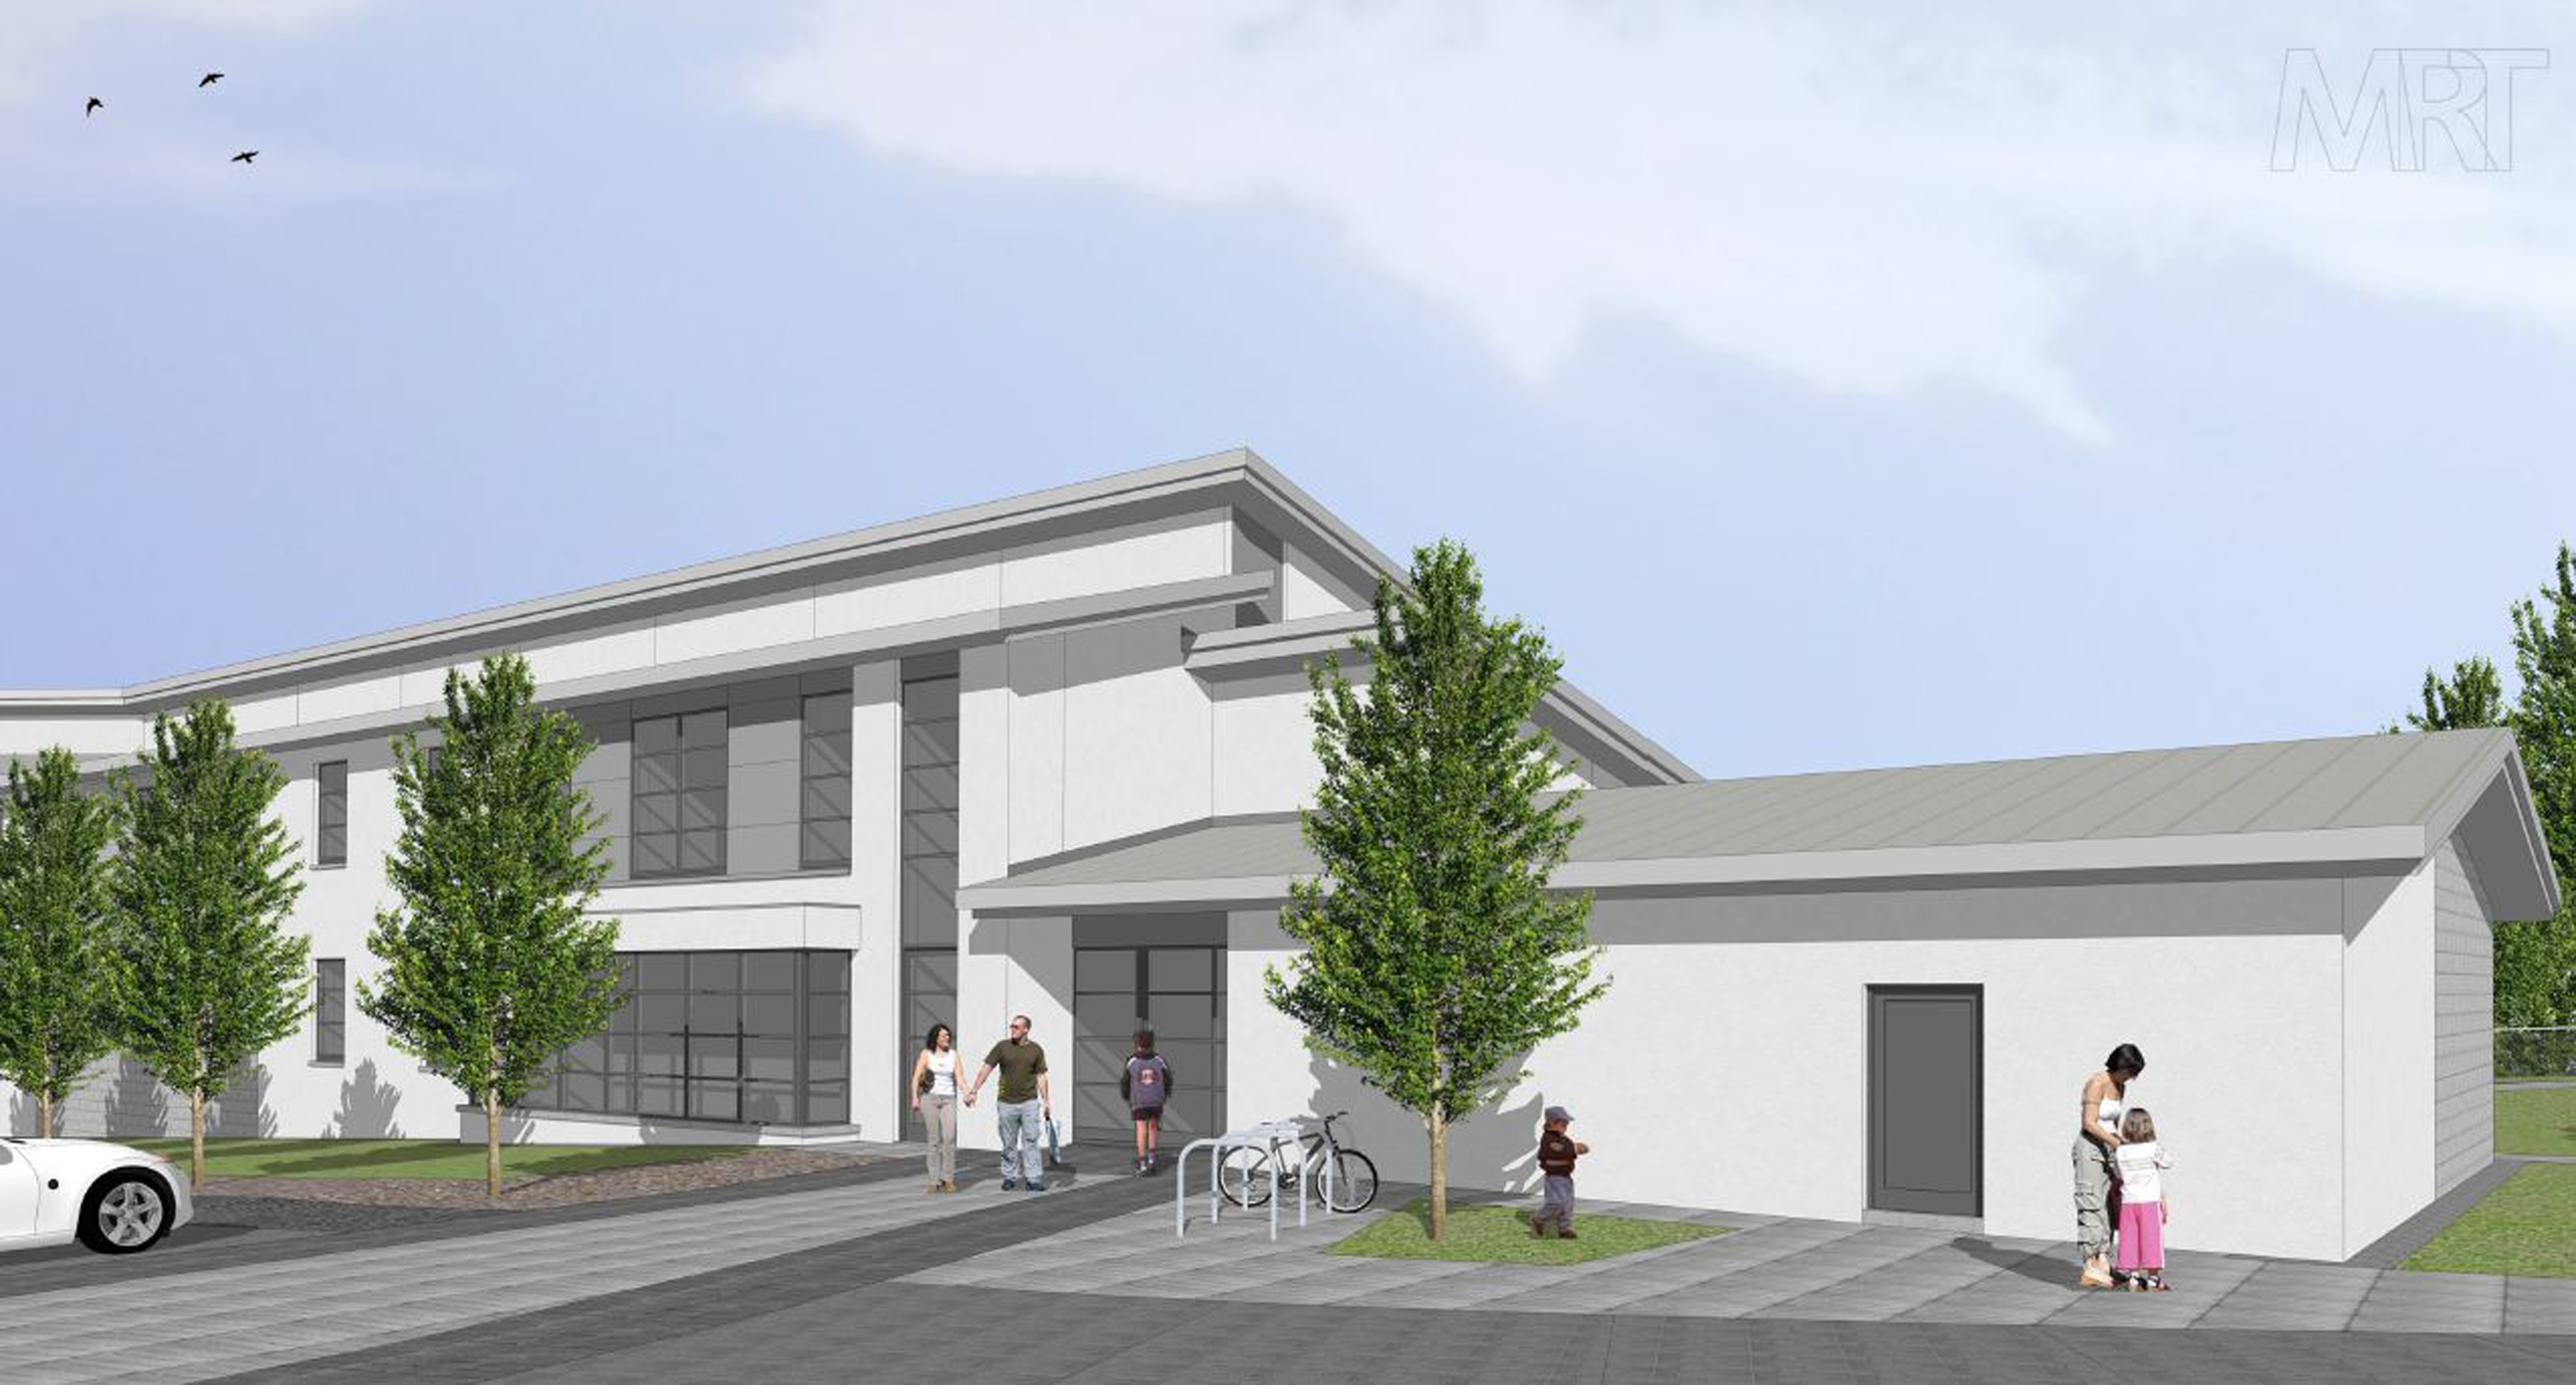 An artist impression of what the centre will look like.